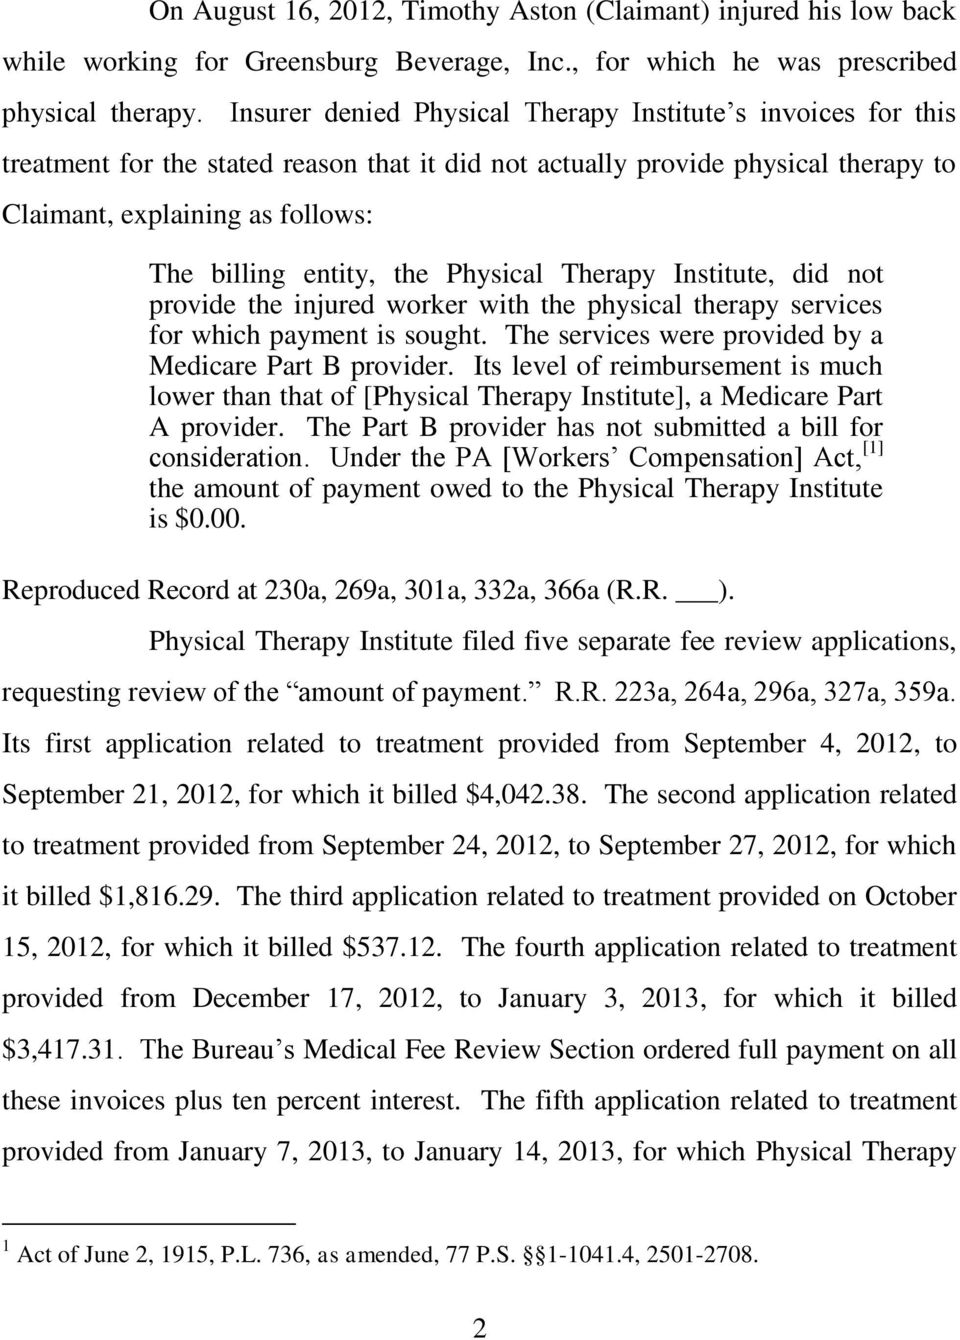 the Physical Therapy Institute, did not provide the injured worker with the physical therapy services for which payment is sought. The services were provided by a Medicare Part B provider.